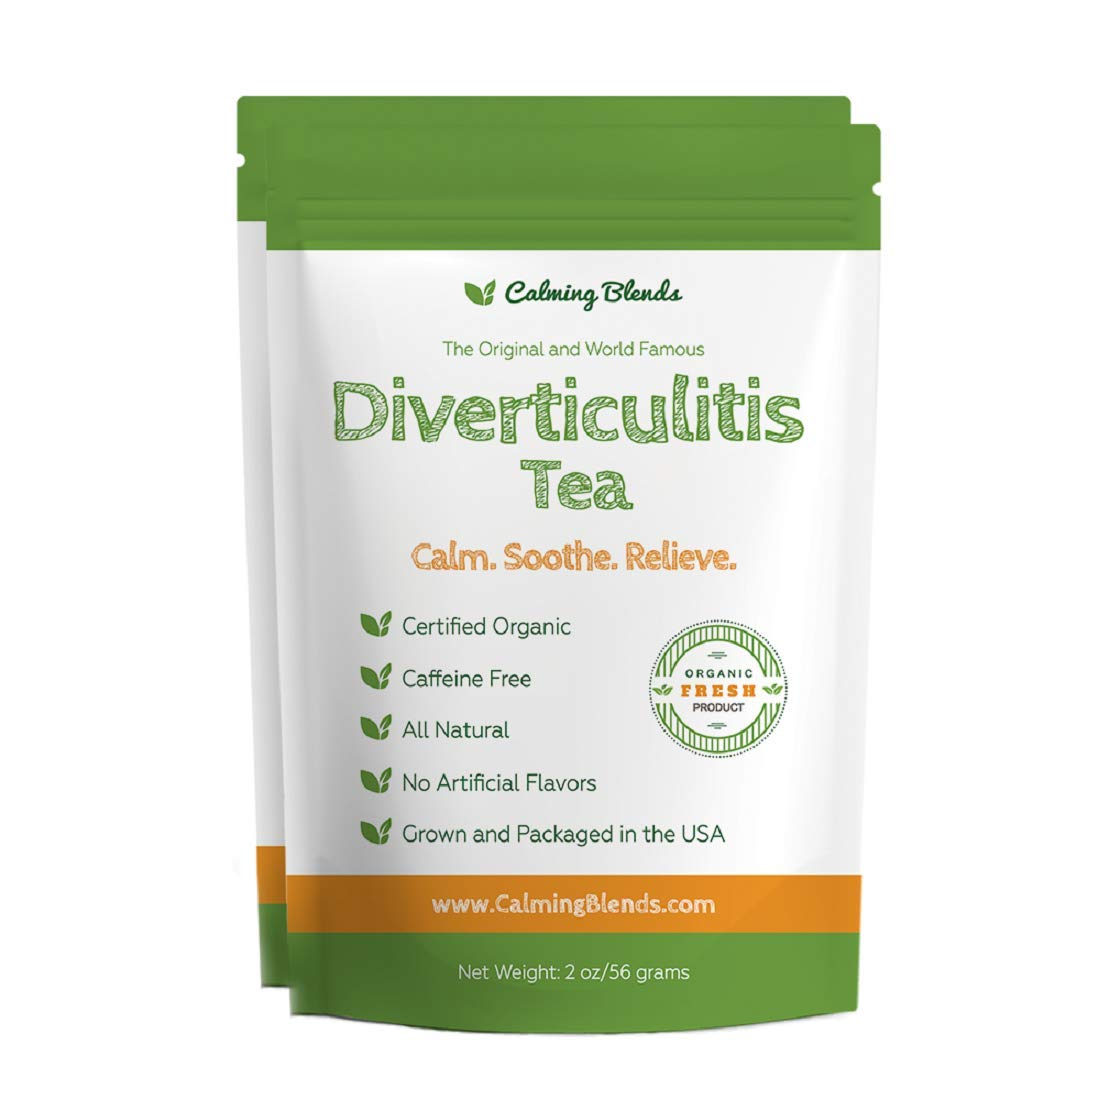 Diverticulitis and Diverticulosis Tea. 2-Pack